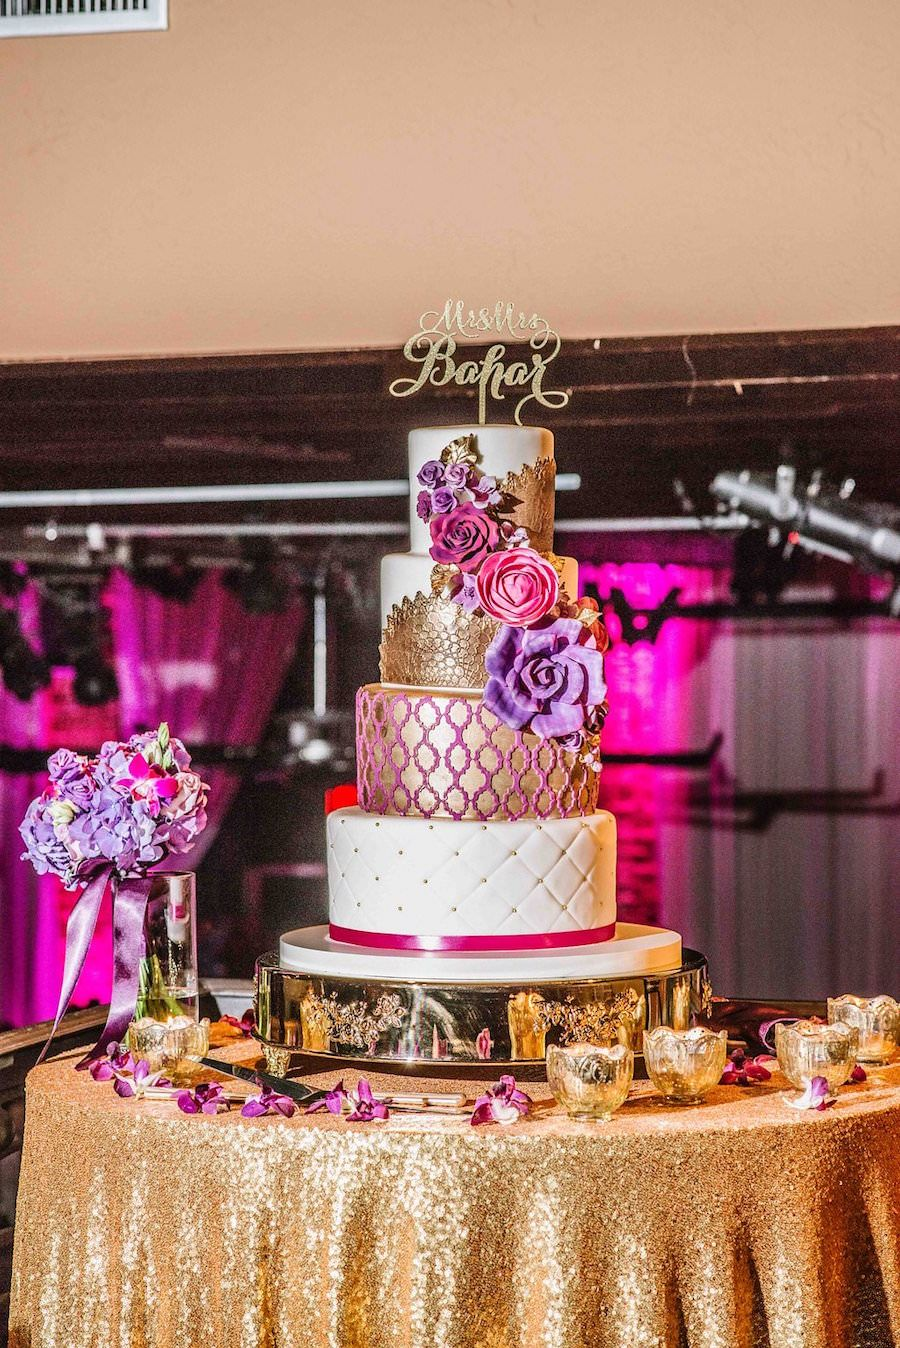 Four Tier Round Gold, Pink and Purple Wedding Cake and Gold Sequin Name Cake Topper on Gold Sequined Specialty Linen at Downtown St. Pete Wedding Reception Venue NOVA 535 | Purple Orange and Turquoise Moroccan Inspired St. Pete Wedding